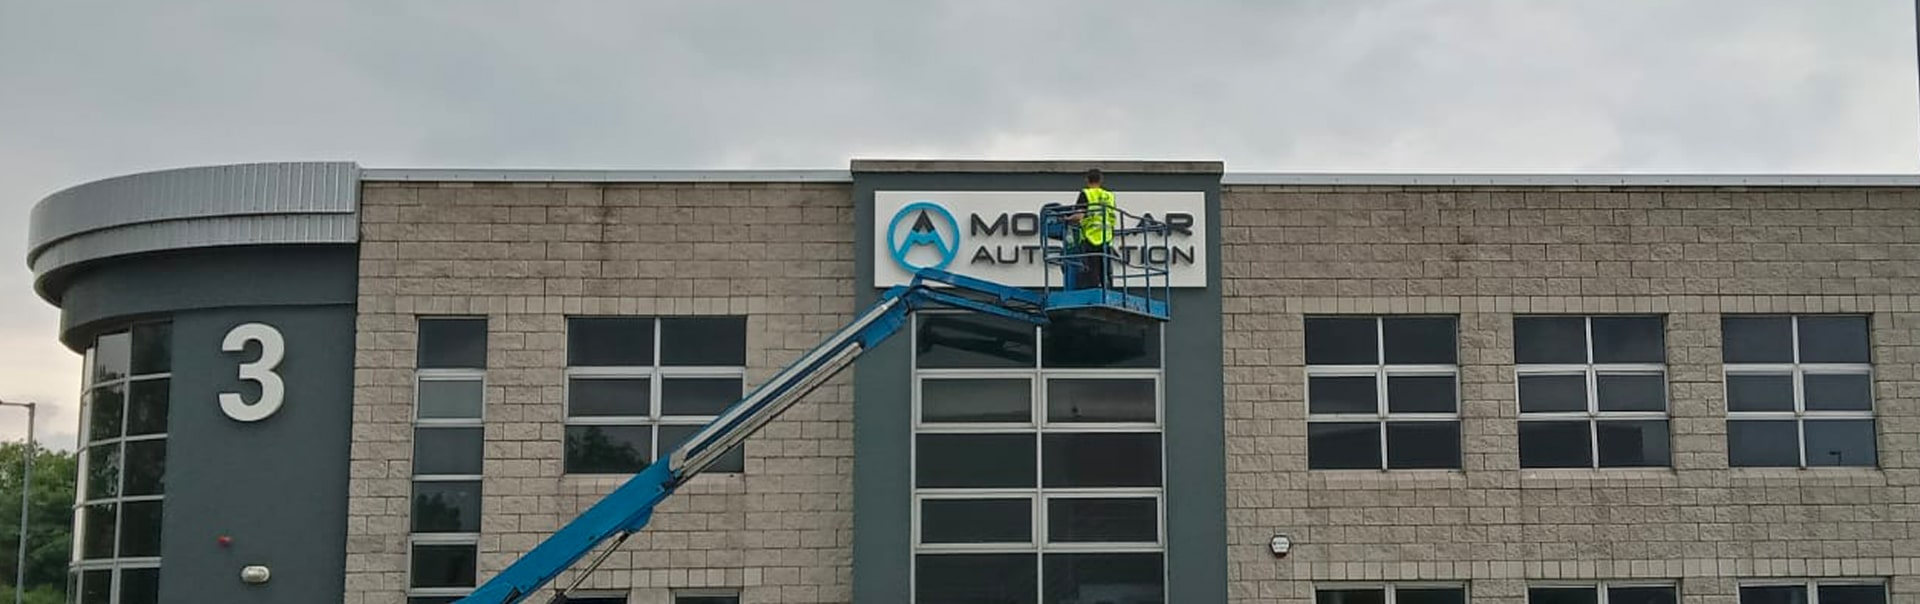 Working at height to install a halo-lit building sign at Modular Automation, Shannon.